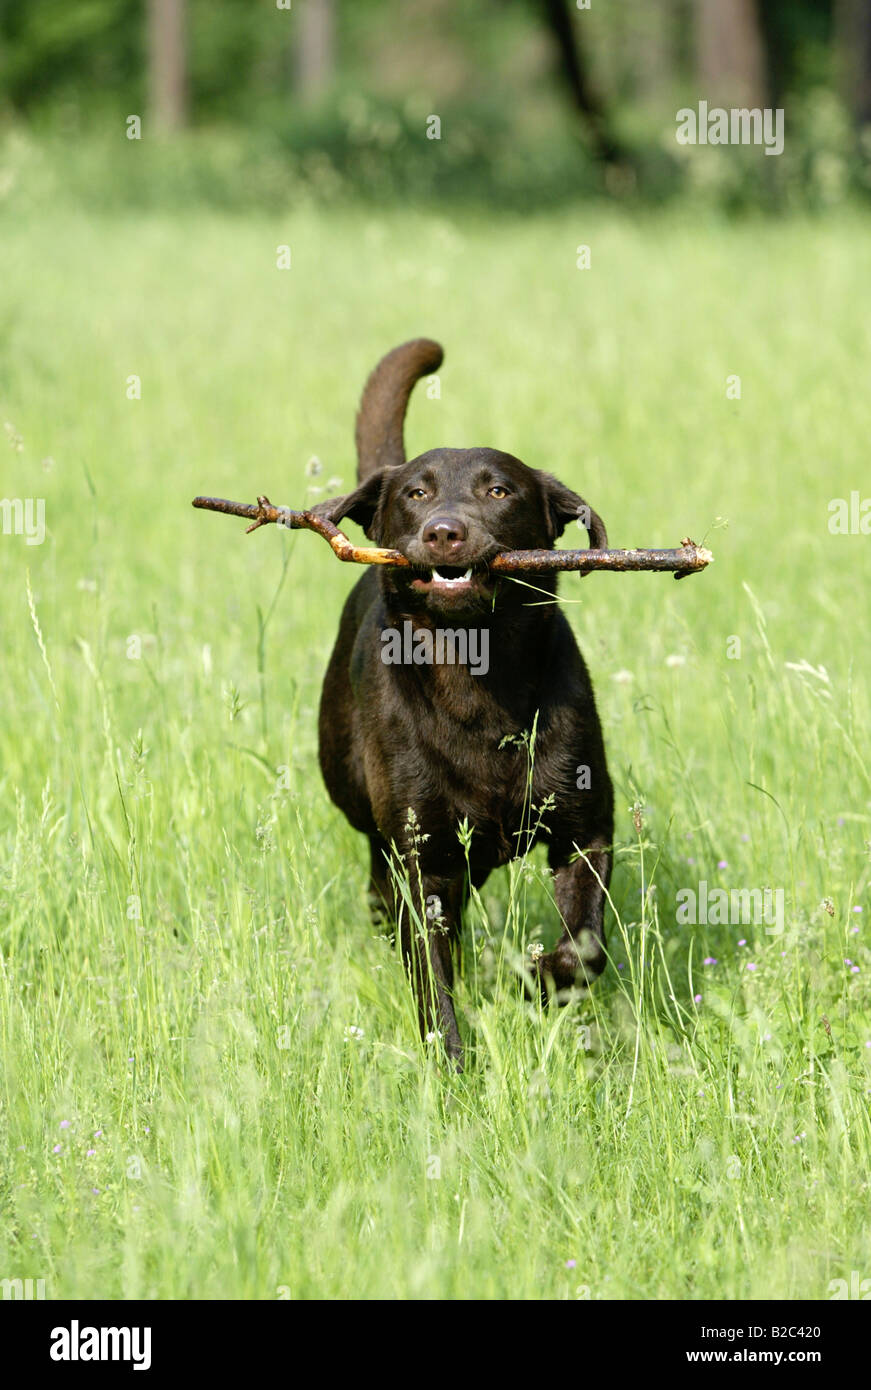 Labrador, short-haired type, running with a stick in a meadow - Stock Image